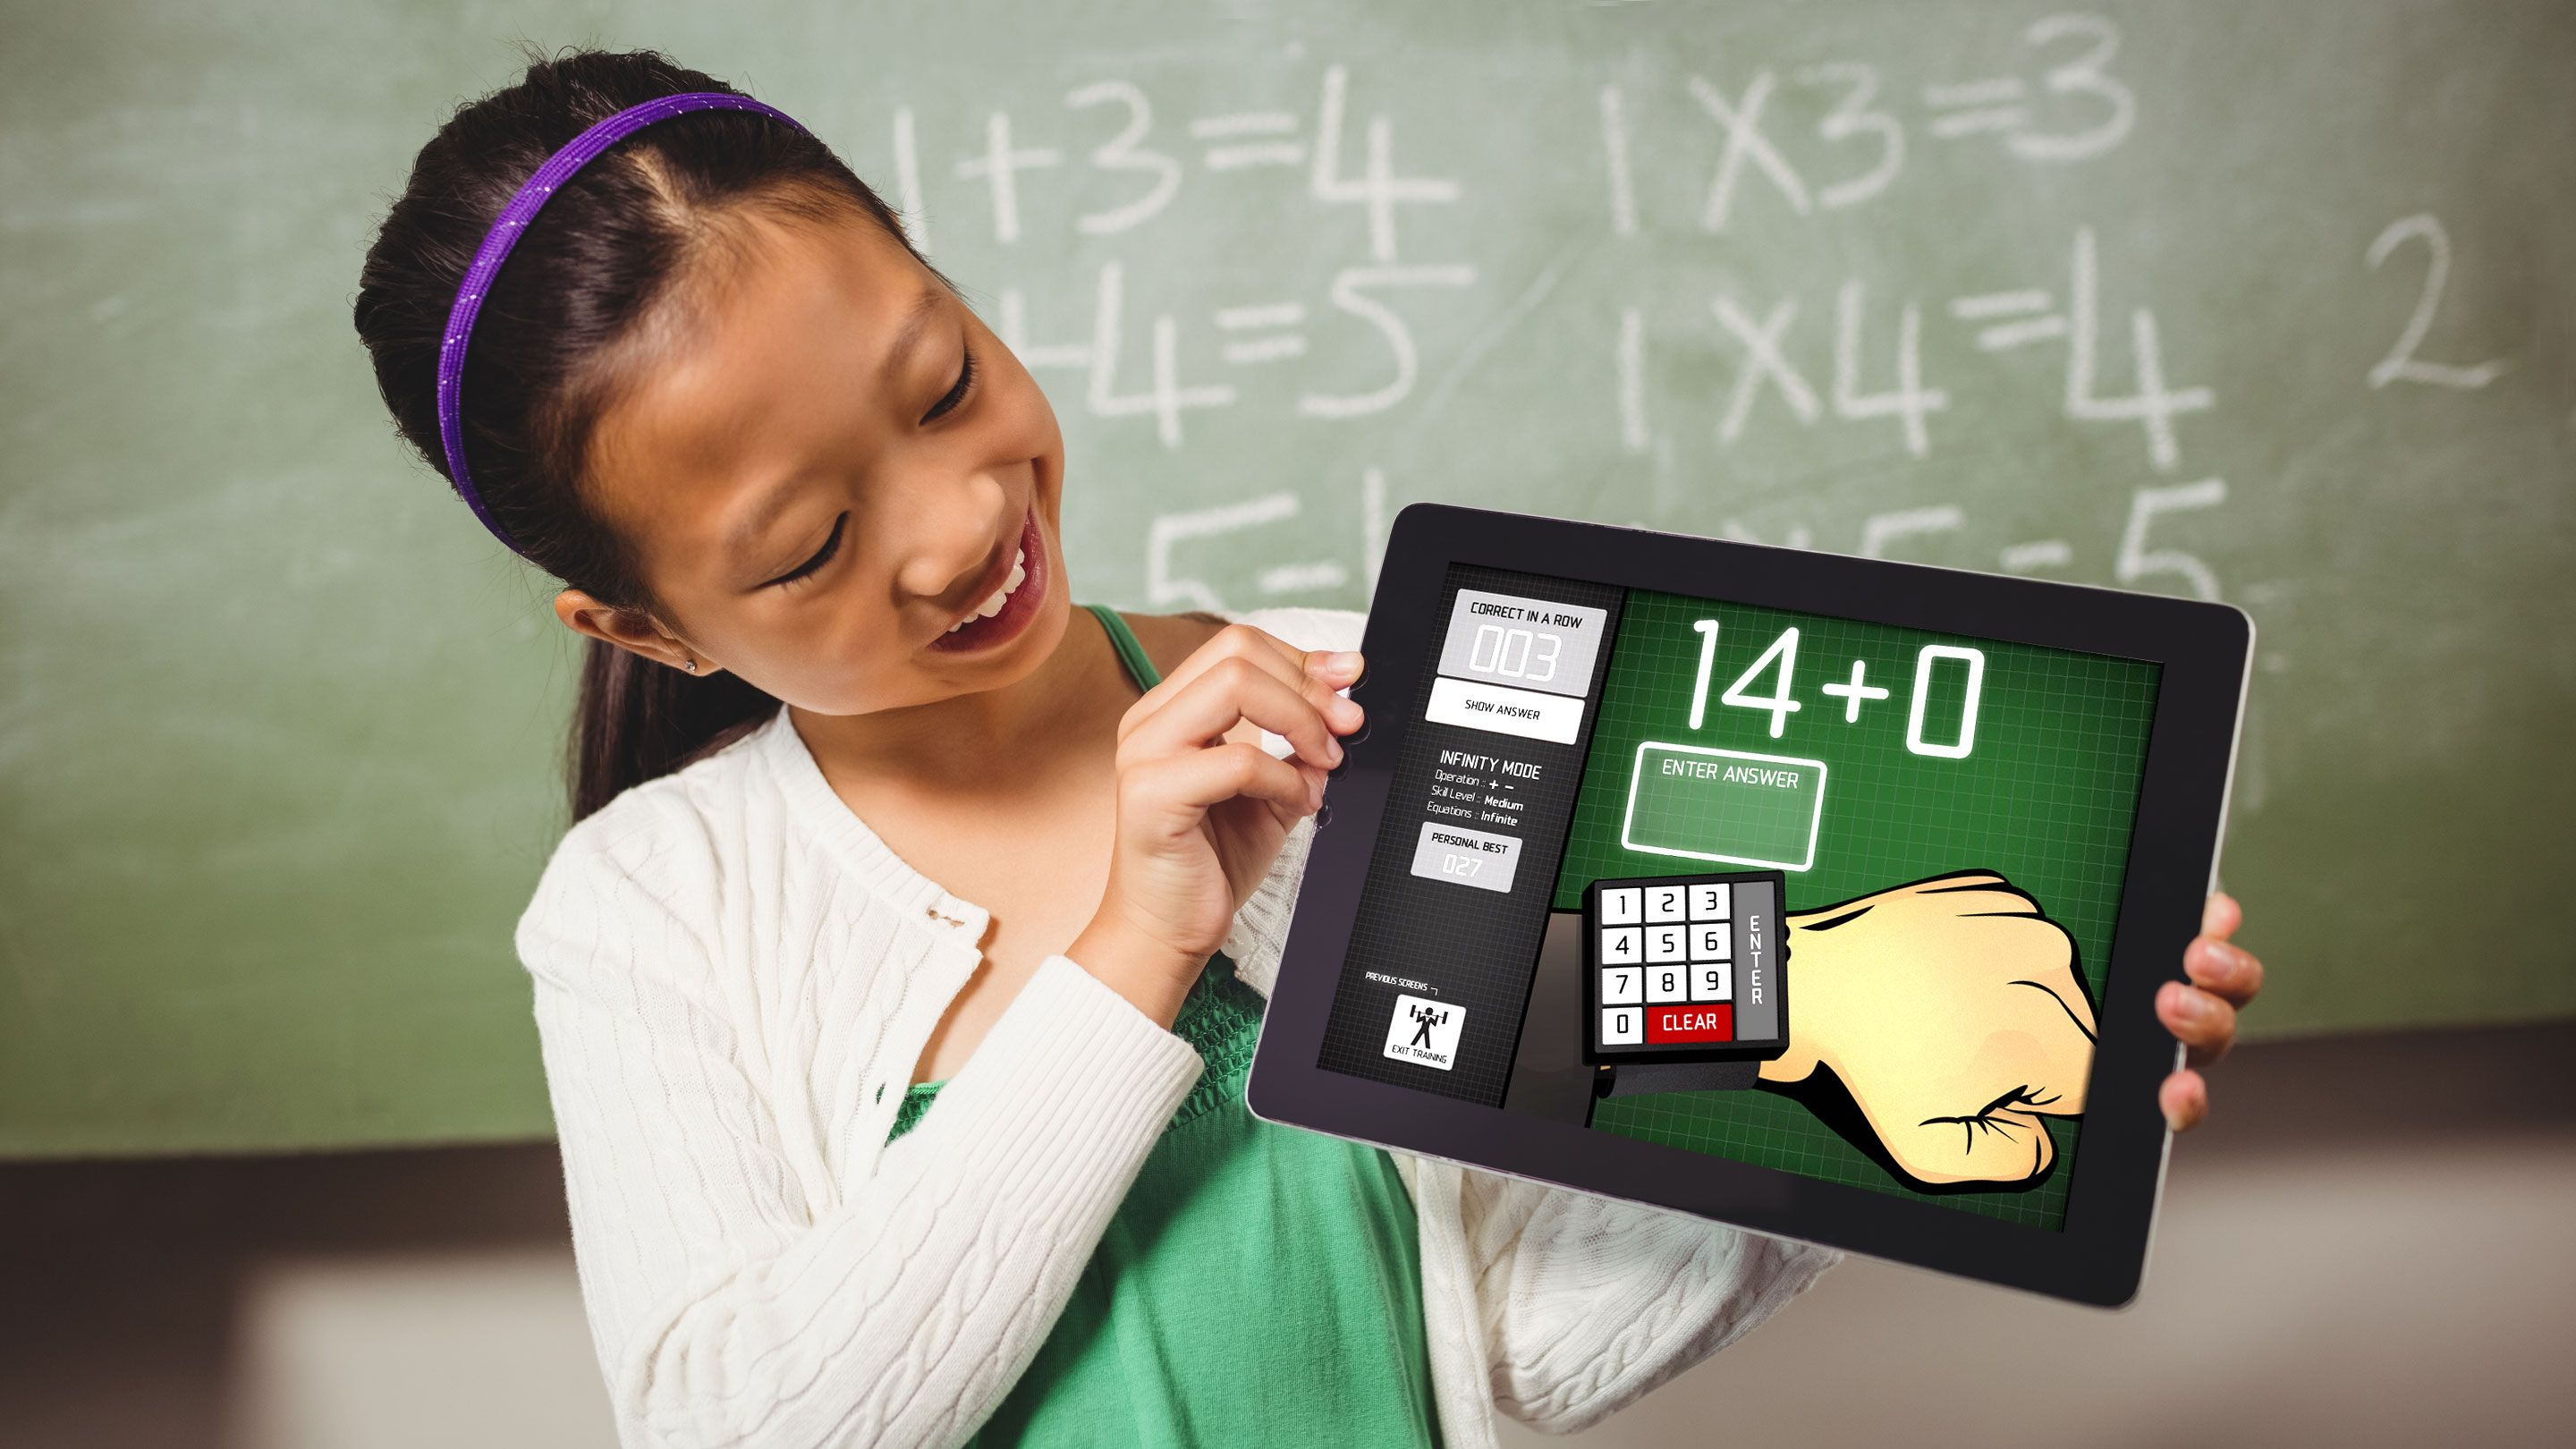 A girl looks at a math app on a tablet screen.